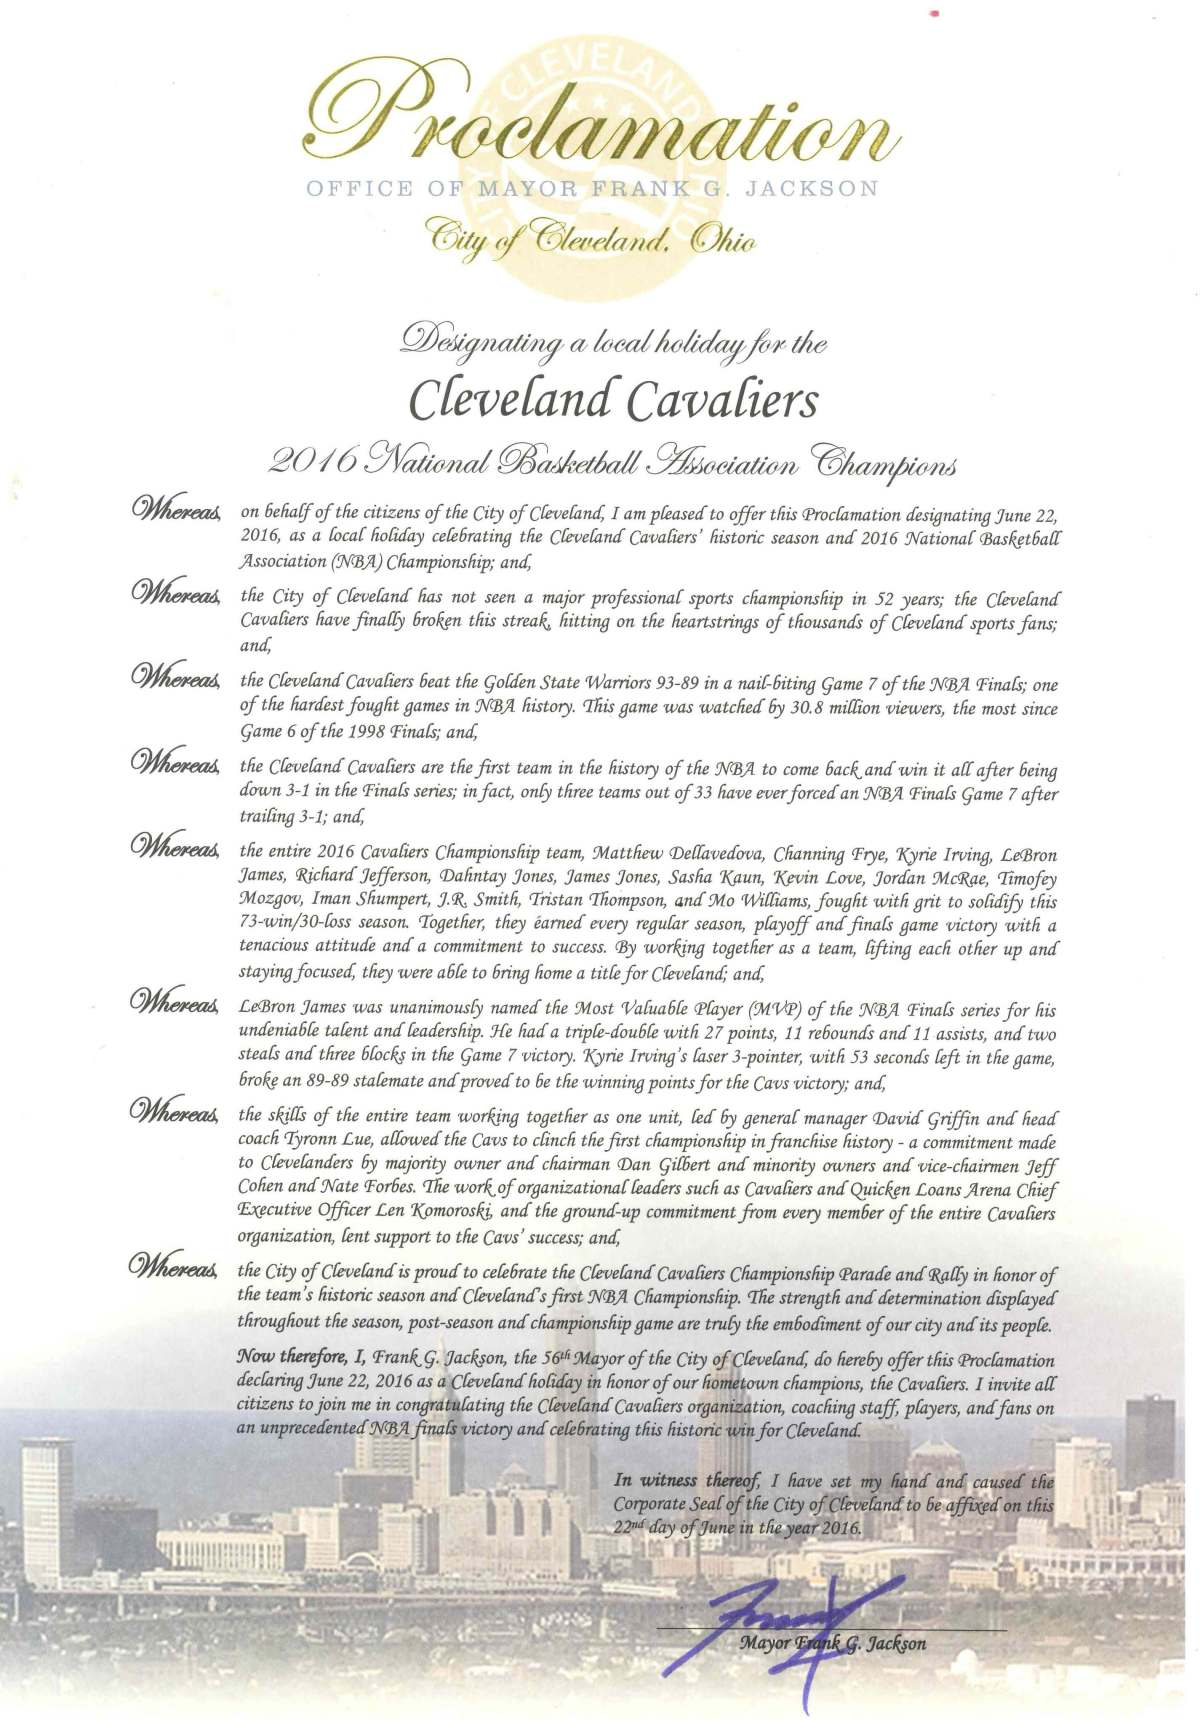 Cleveland Cavaliers Championship Parade and Rally Proclamation